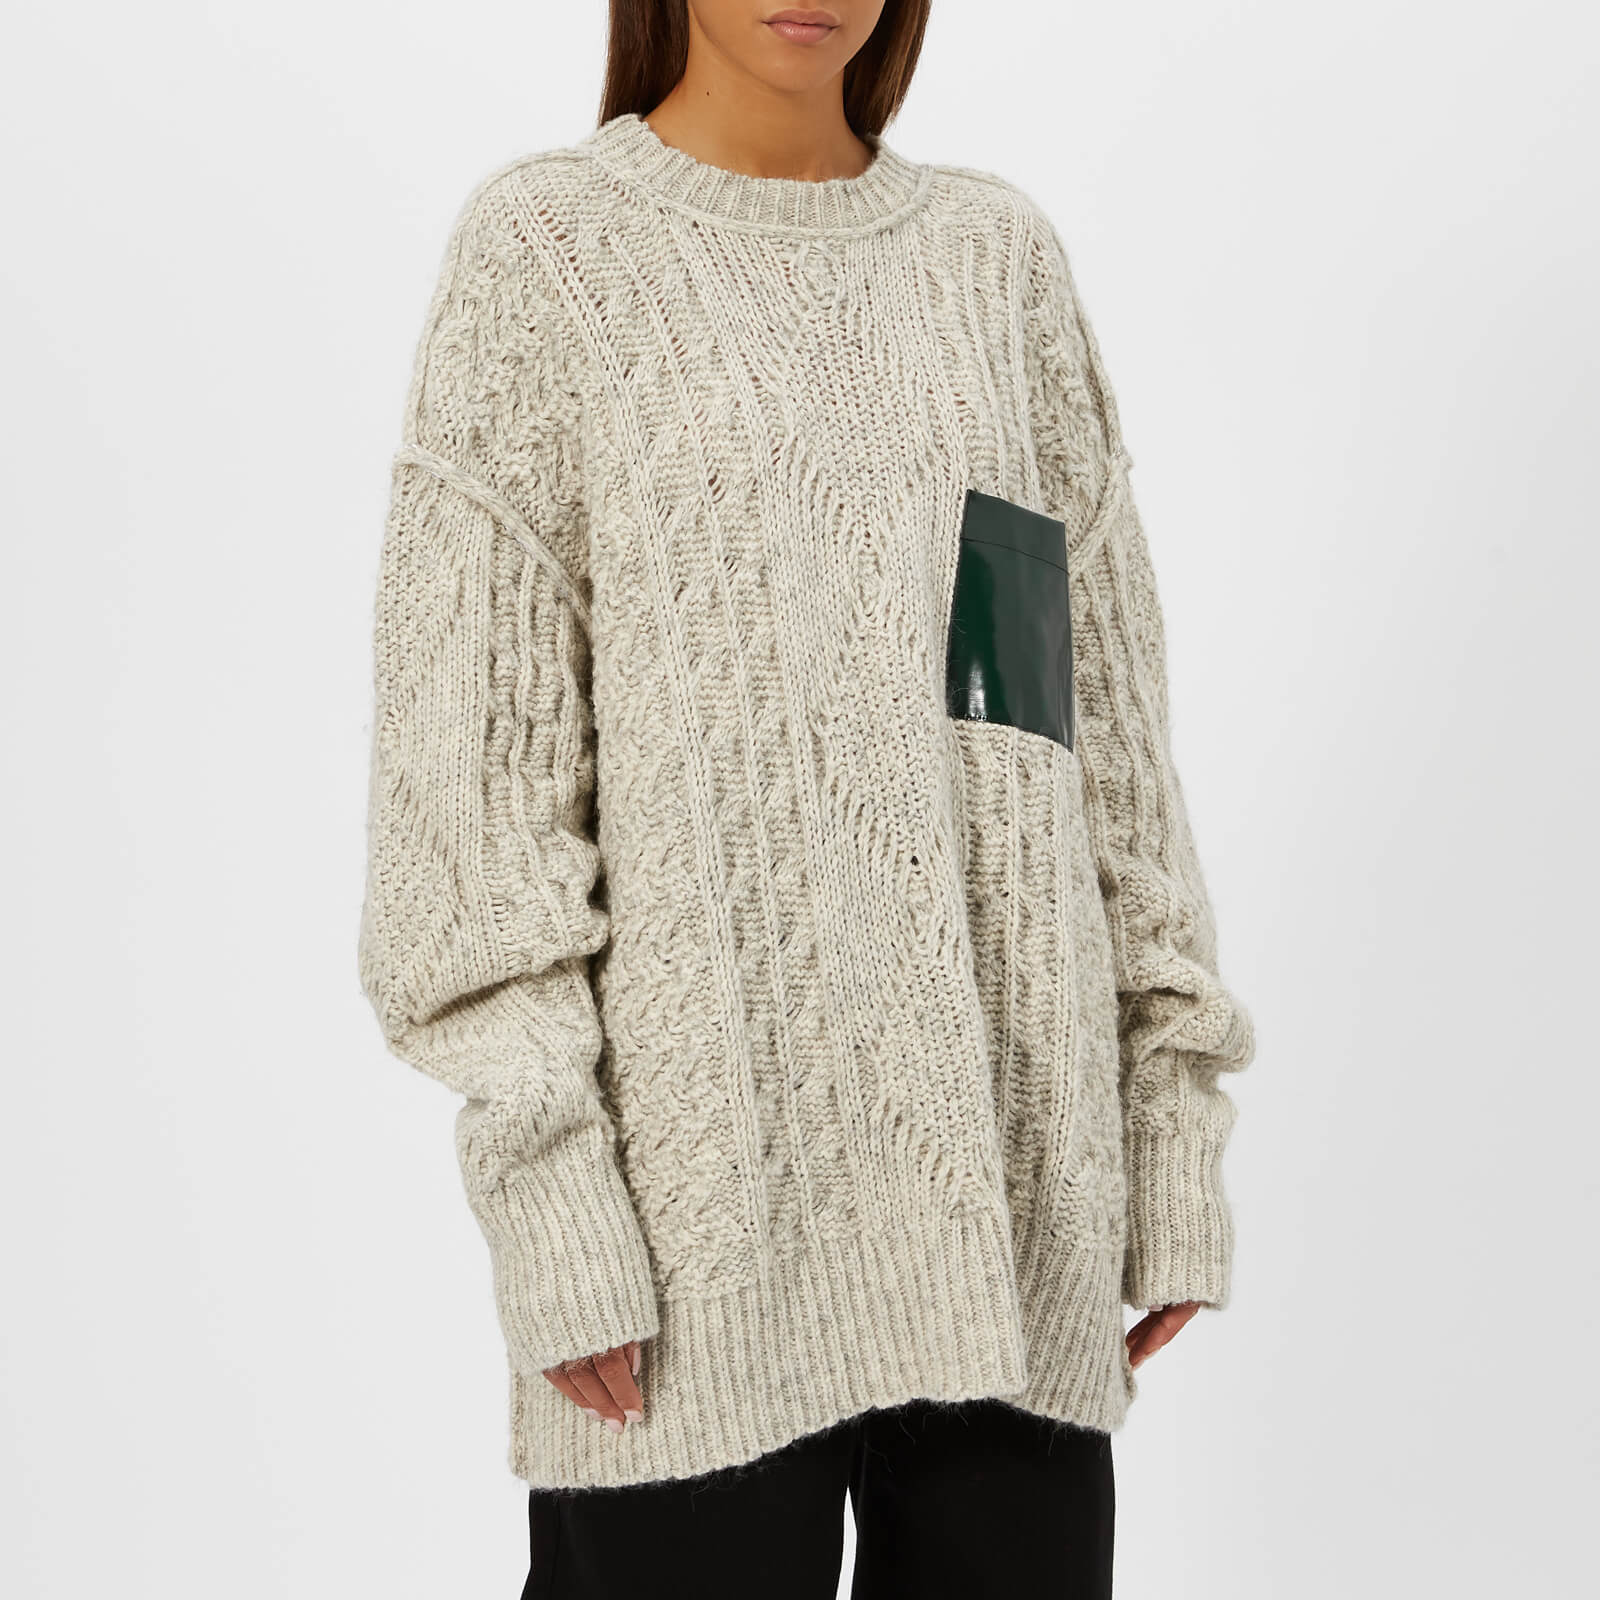 5934bea039b55e MM6 Maison Margiela Women's Gauge Oversized Cable Knitted Jumper with  Pocket - White - Free UK Delivery over £50